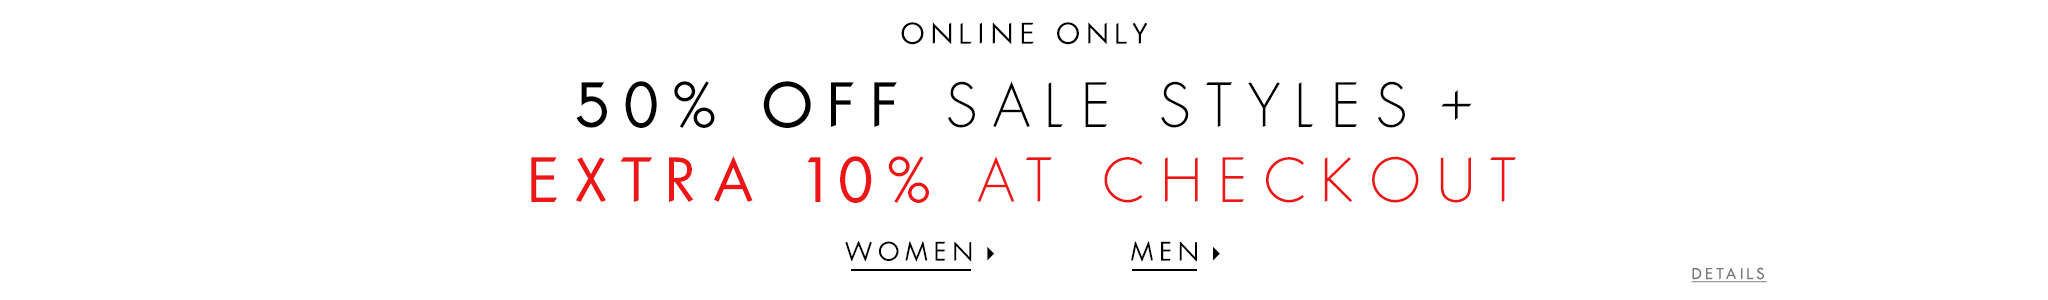 50% Off Sale Styles + Extra 10% At Checkout